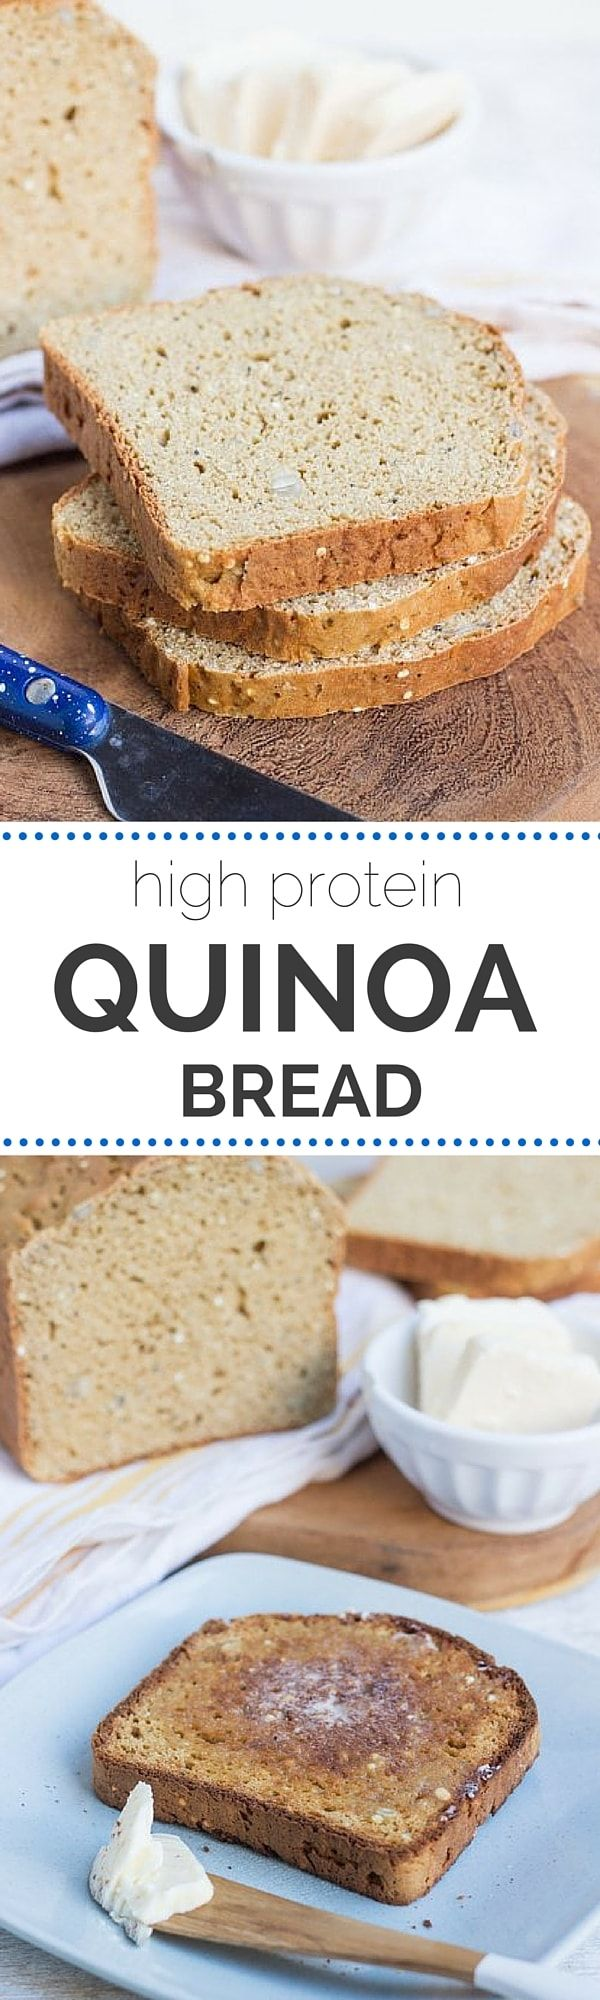 High Protein Quinoa Bread Recipe made with #quinoaflour and chickpea flour, this bread is perfection.